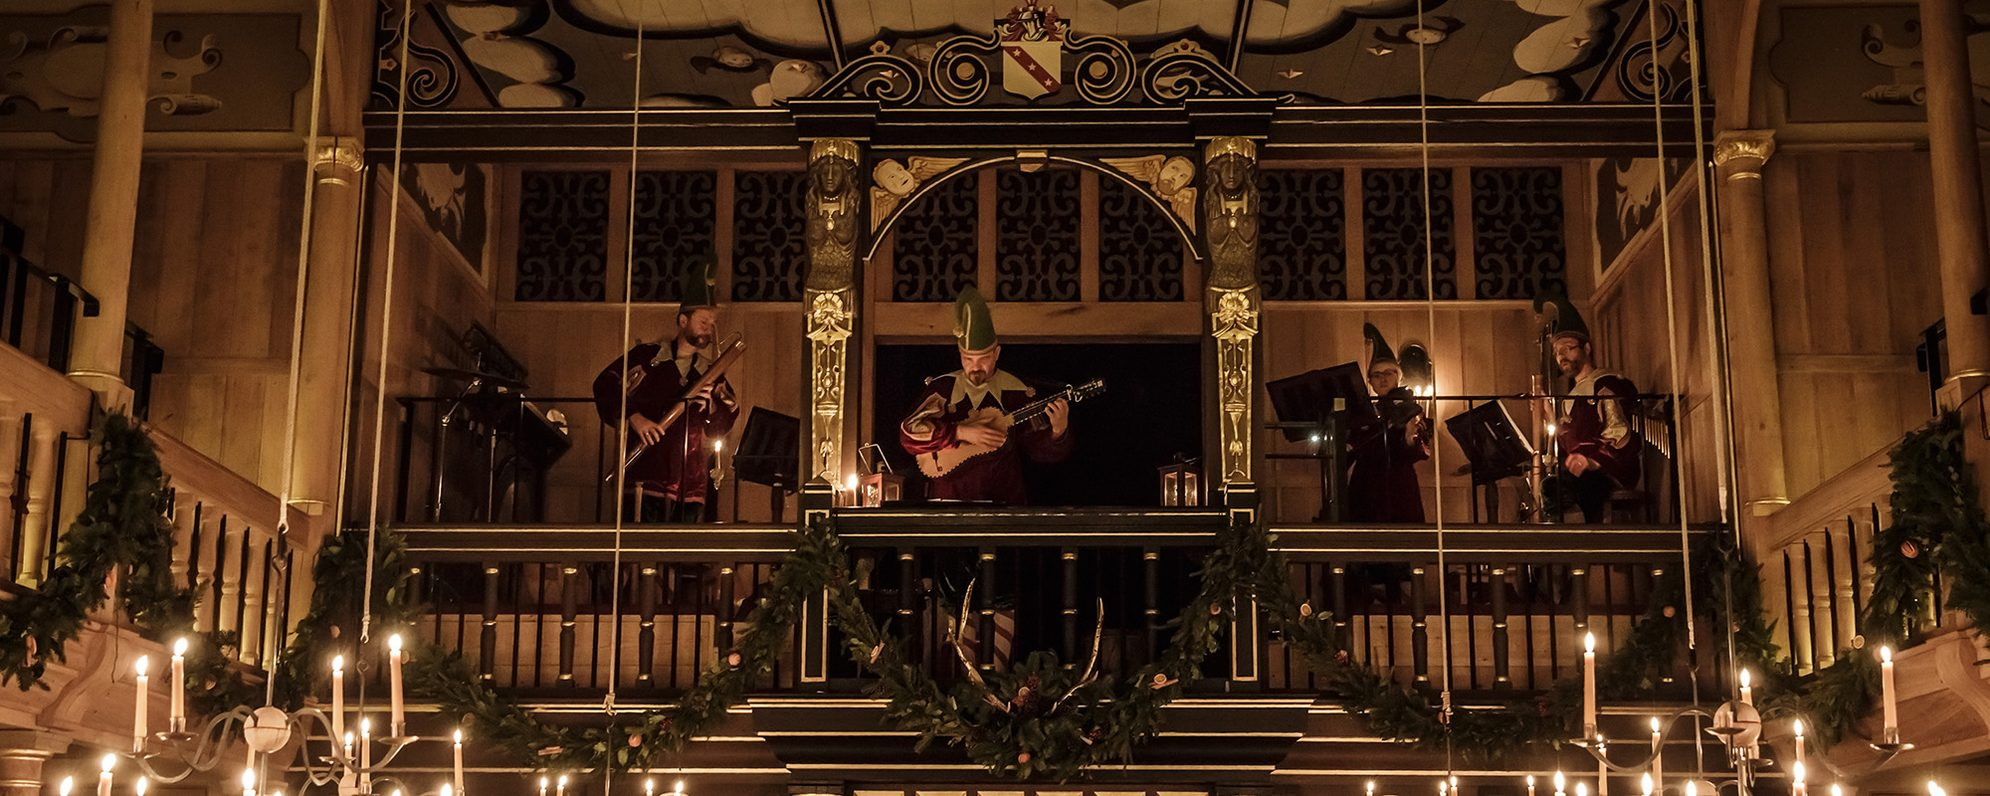 A group of musicians play lutes and pipes in the gallery of a candlelit theatre.